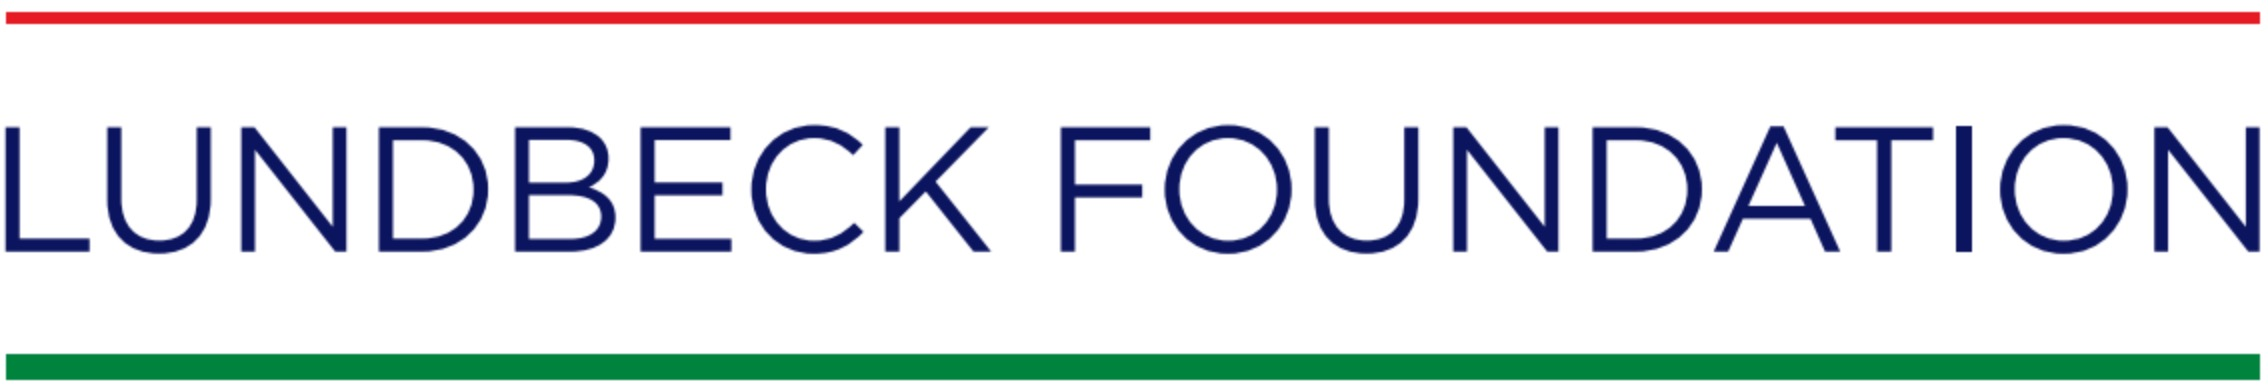 logo gor Lundbeck Foundation